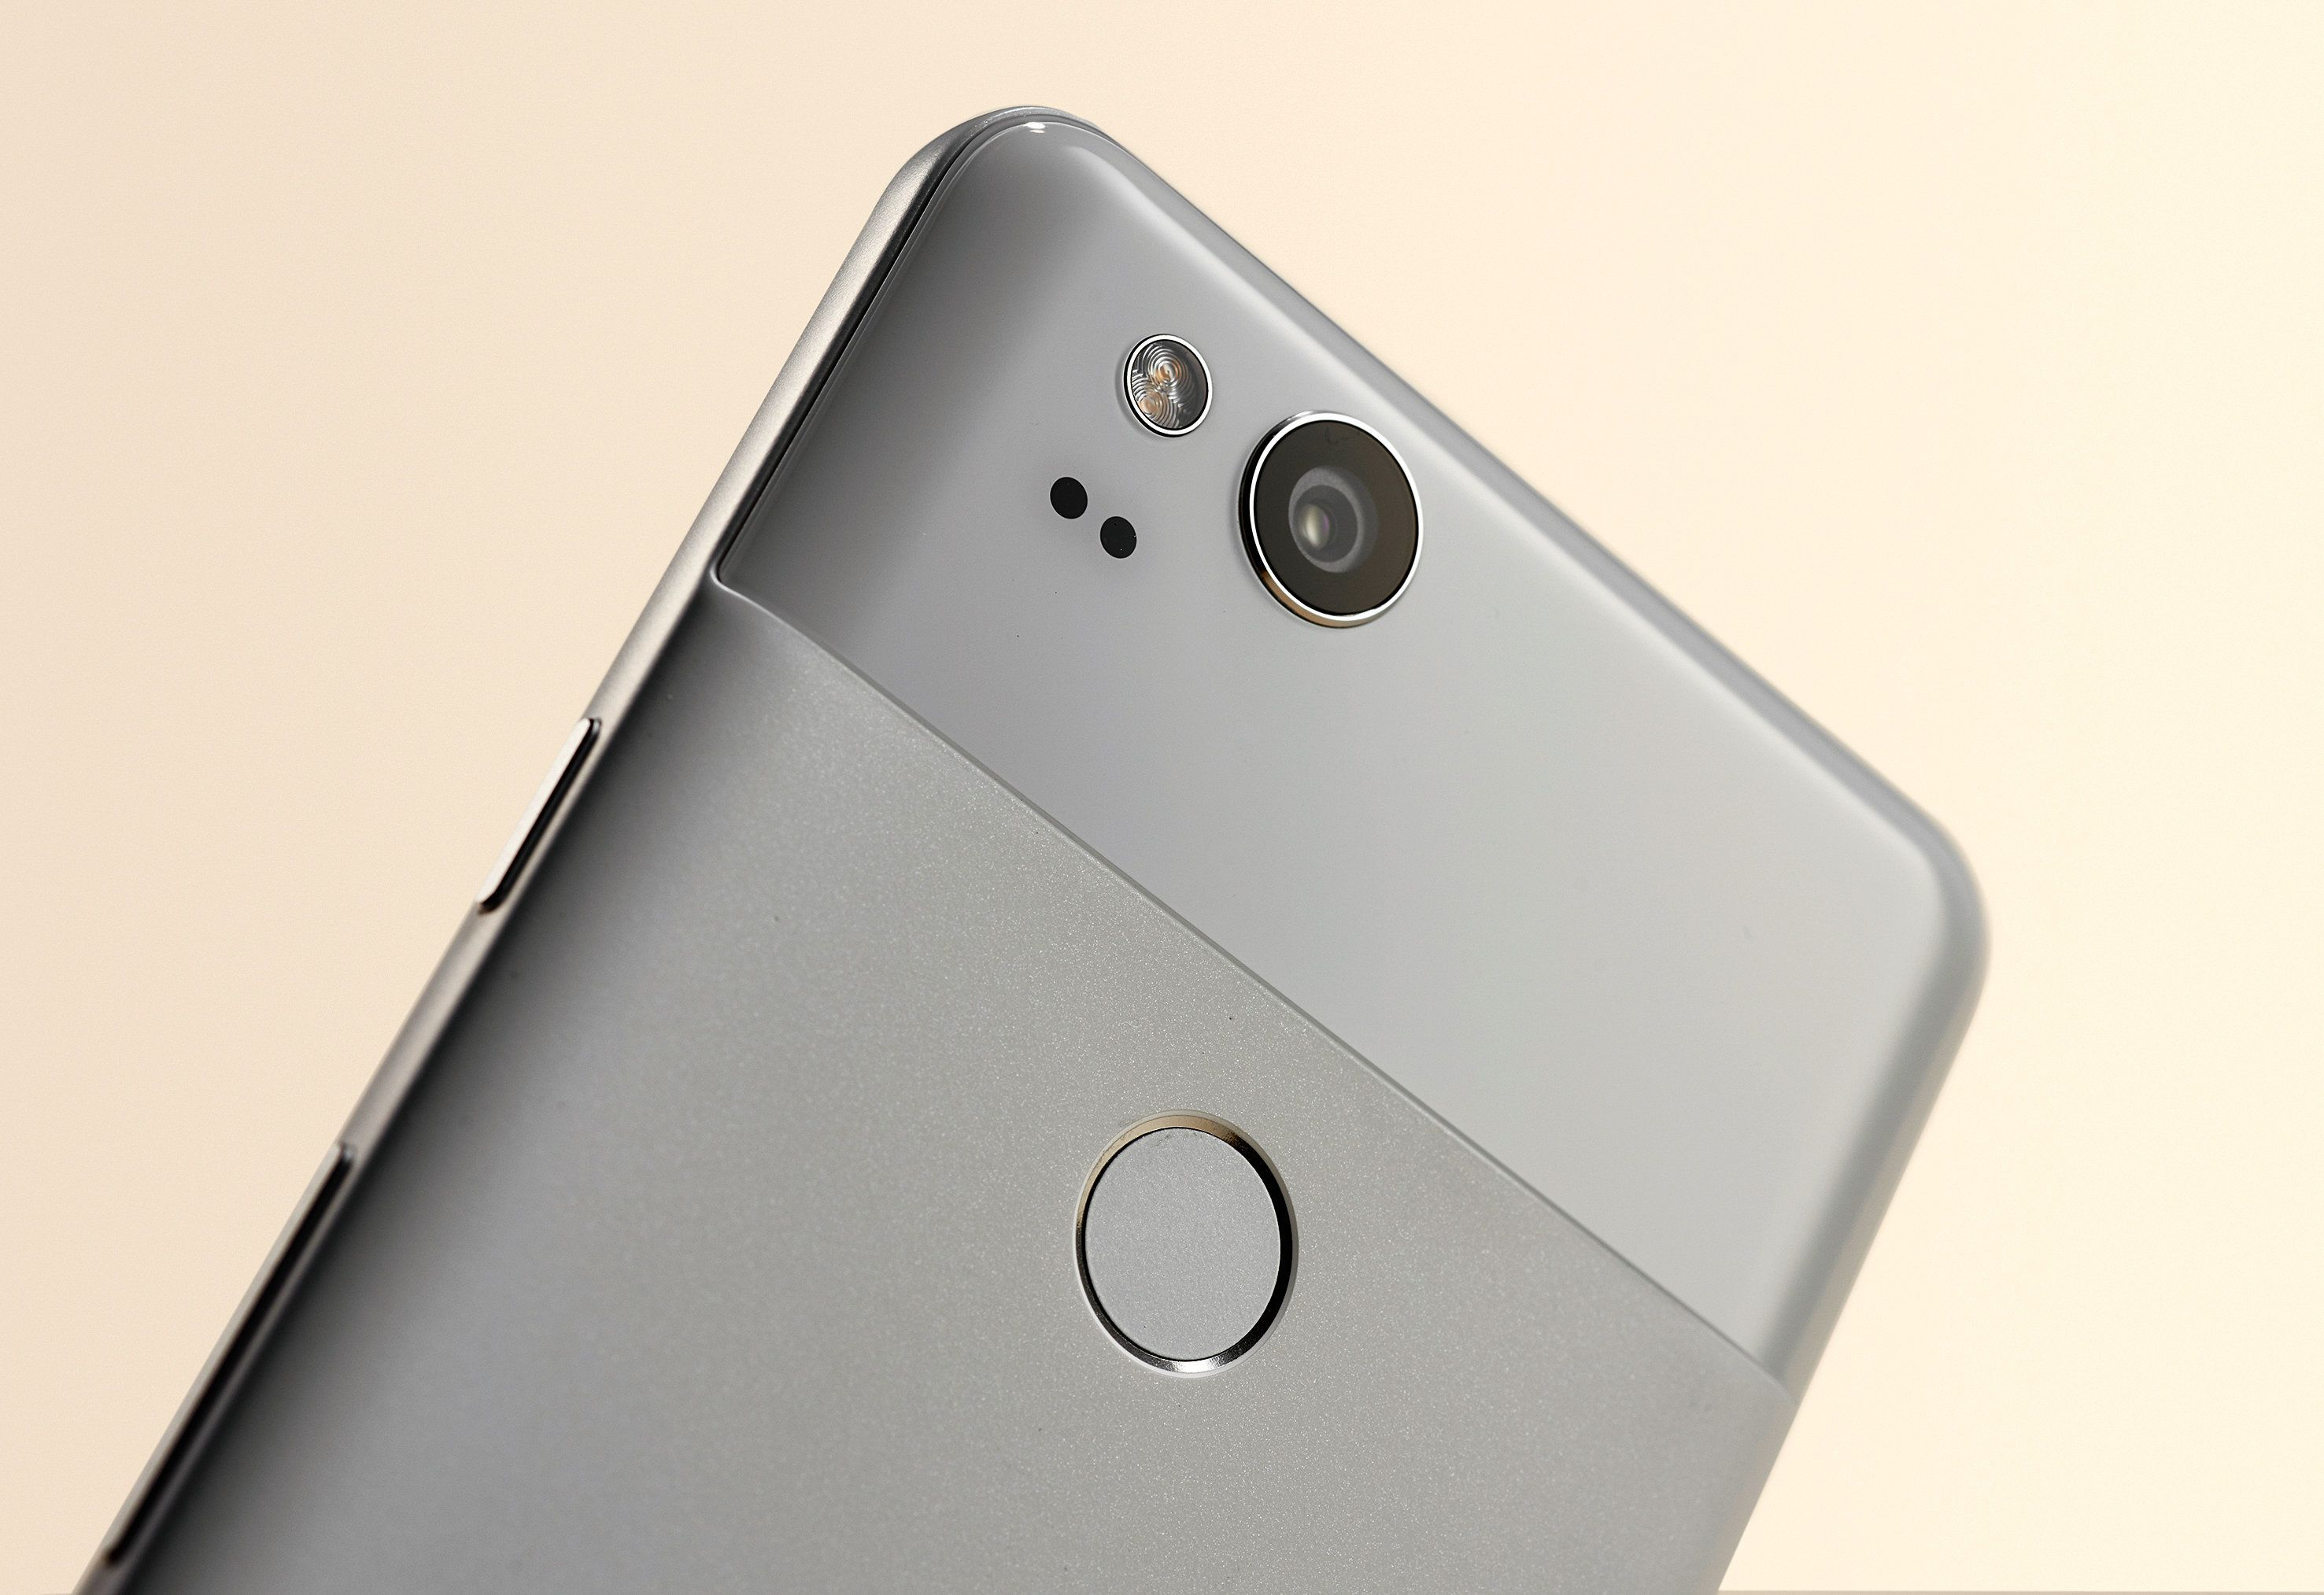 Best Phone Camera 2018: From the iPhone X To The Google Pixel 2 We've Got You